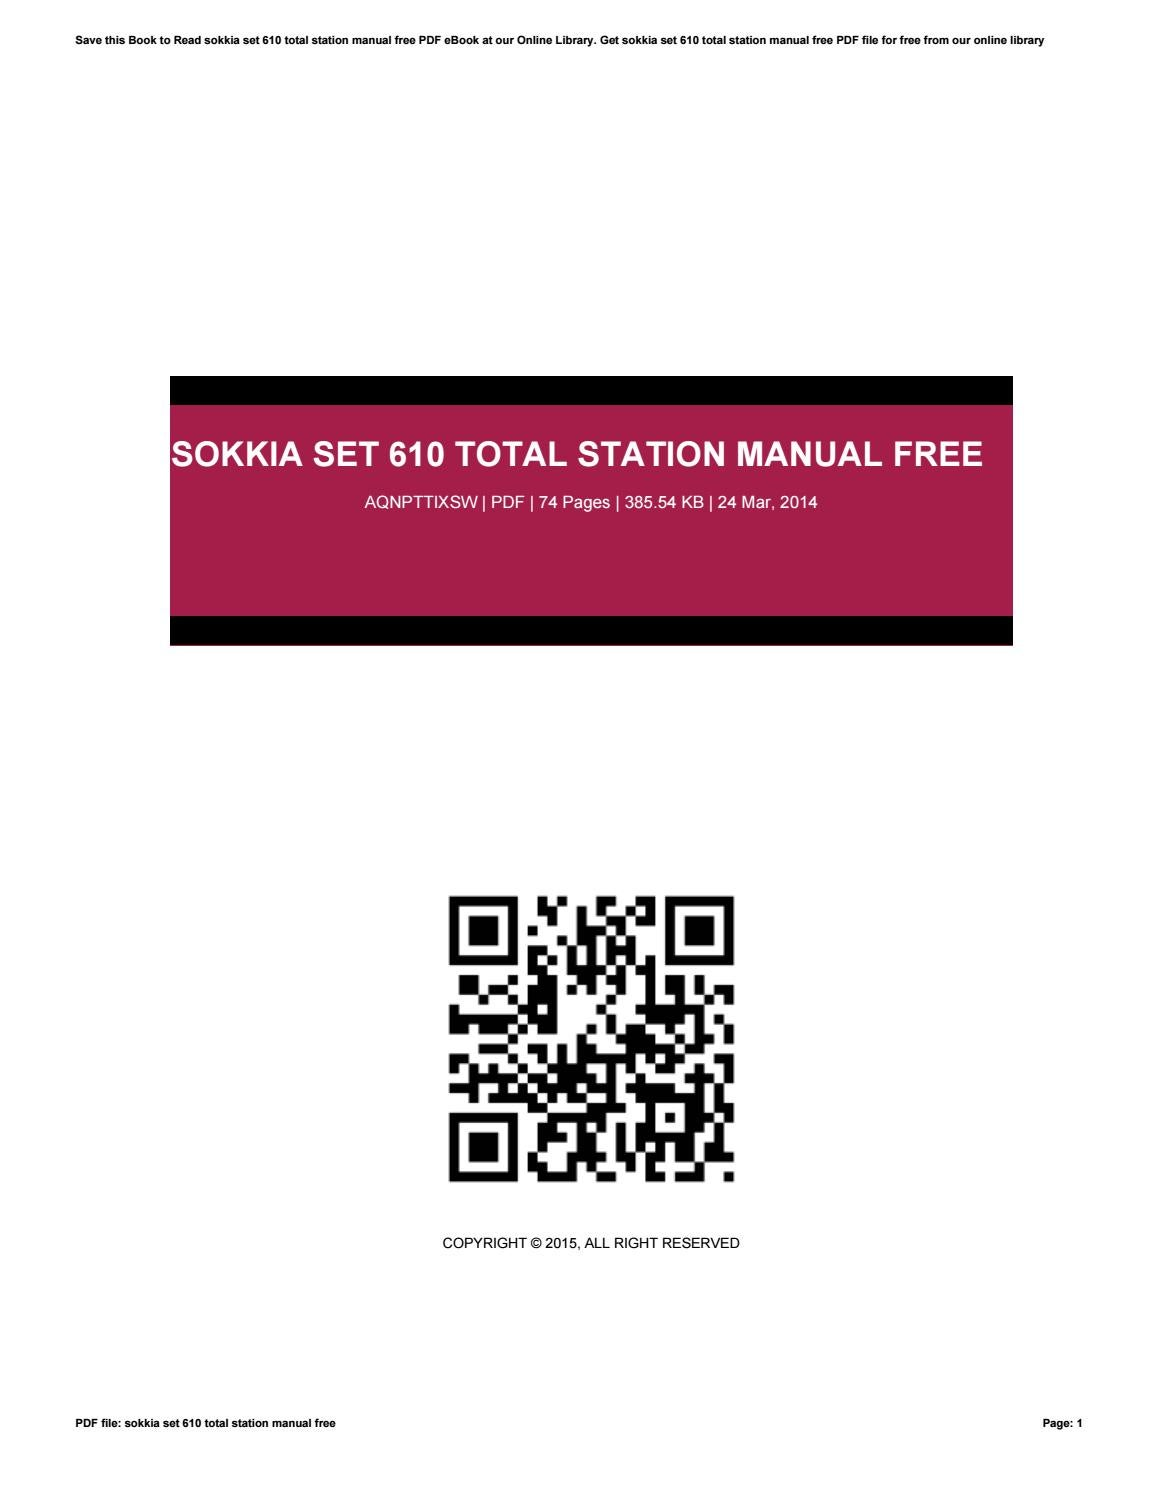 ... Array - sokkia set 610 total station manual free by georgiacollette3459  issuu rh issuu ...